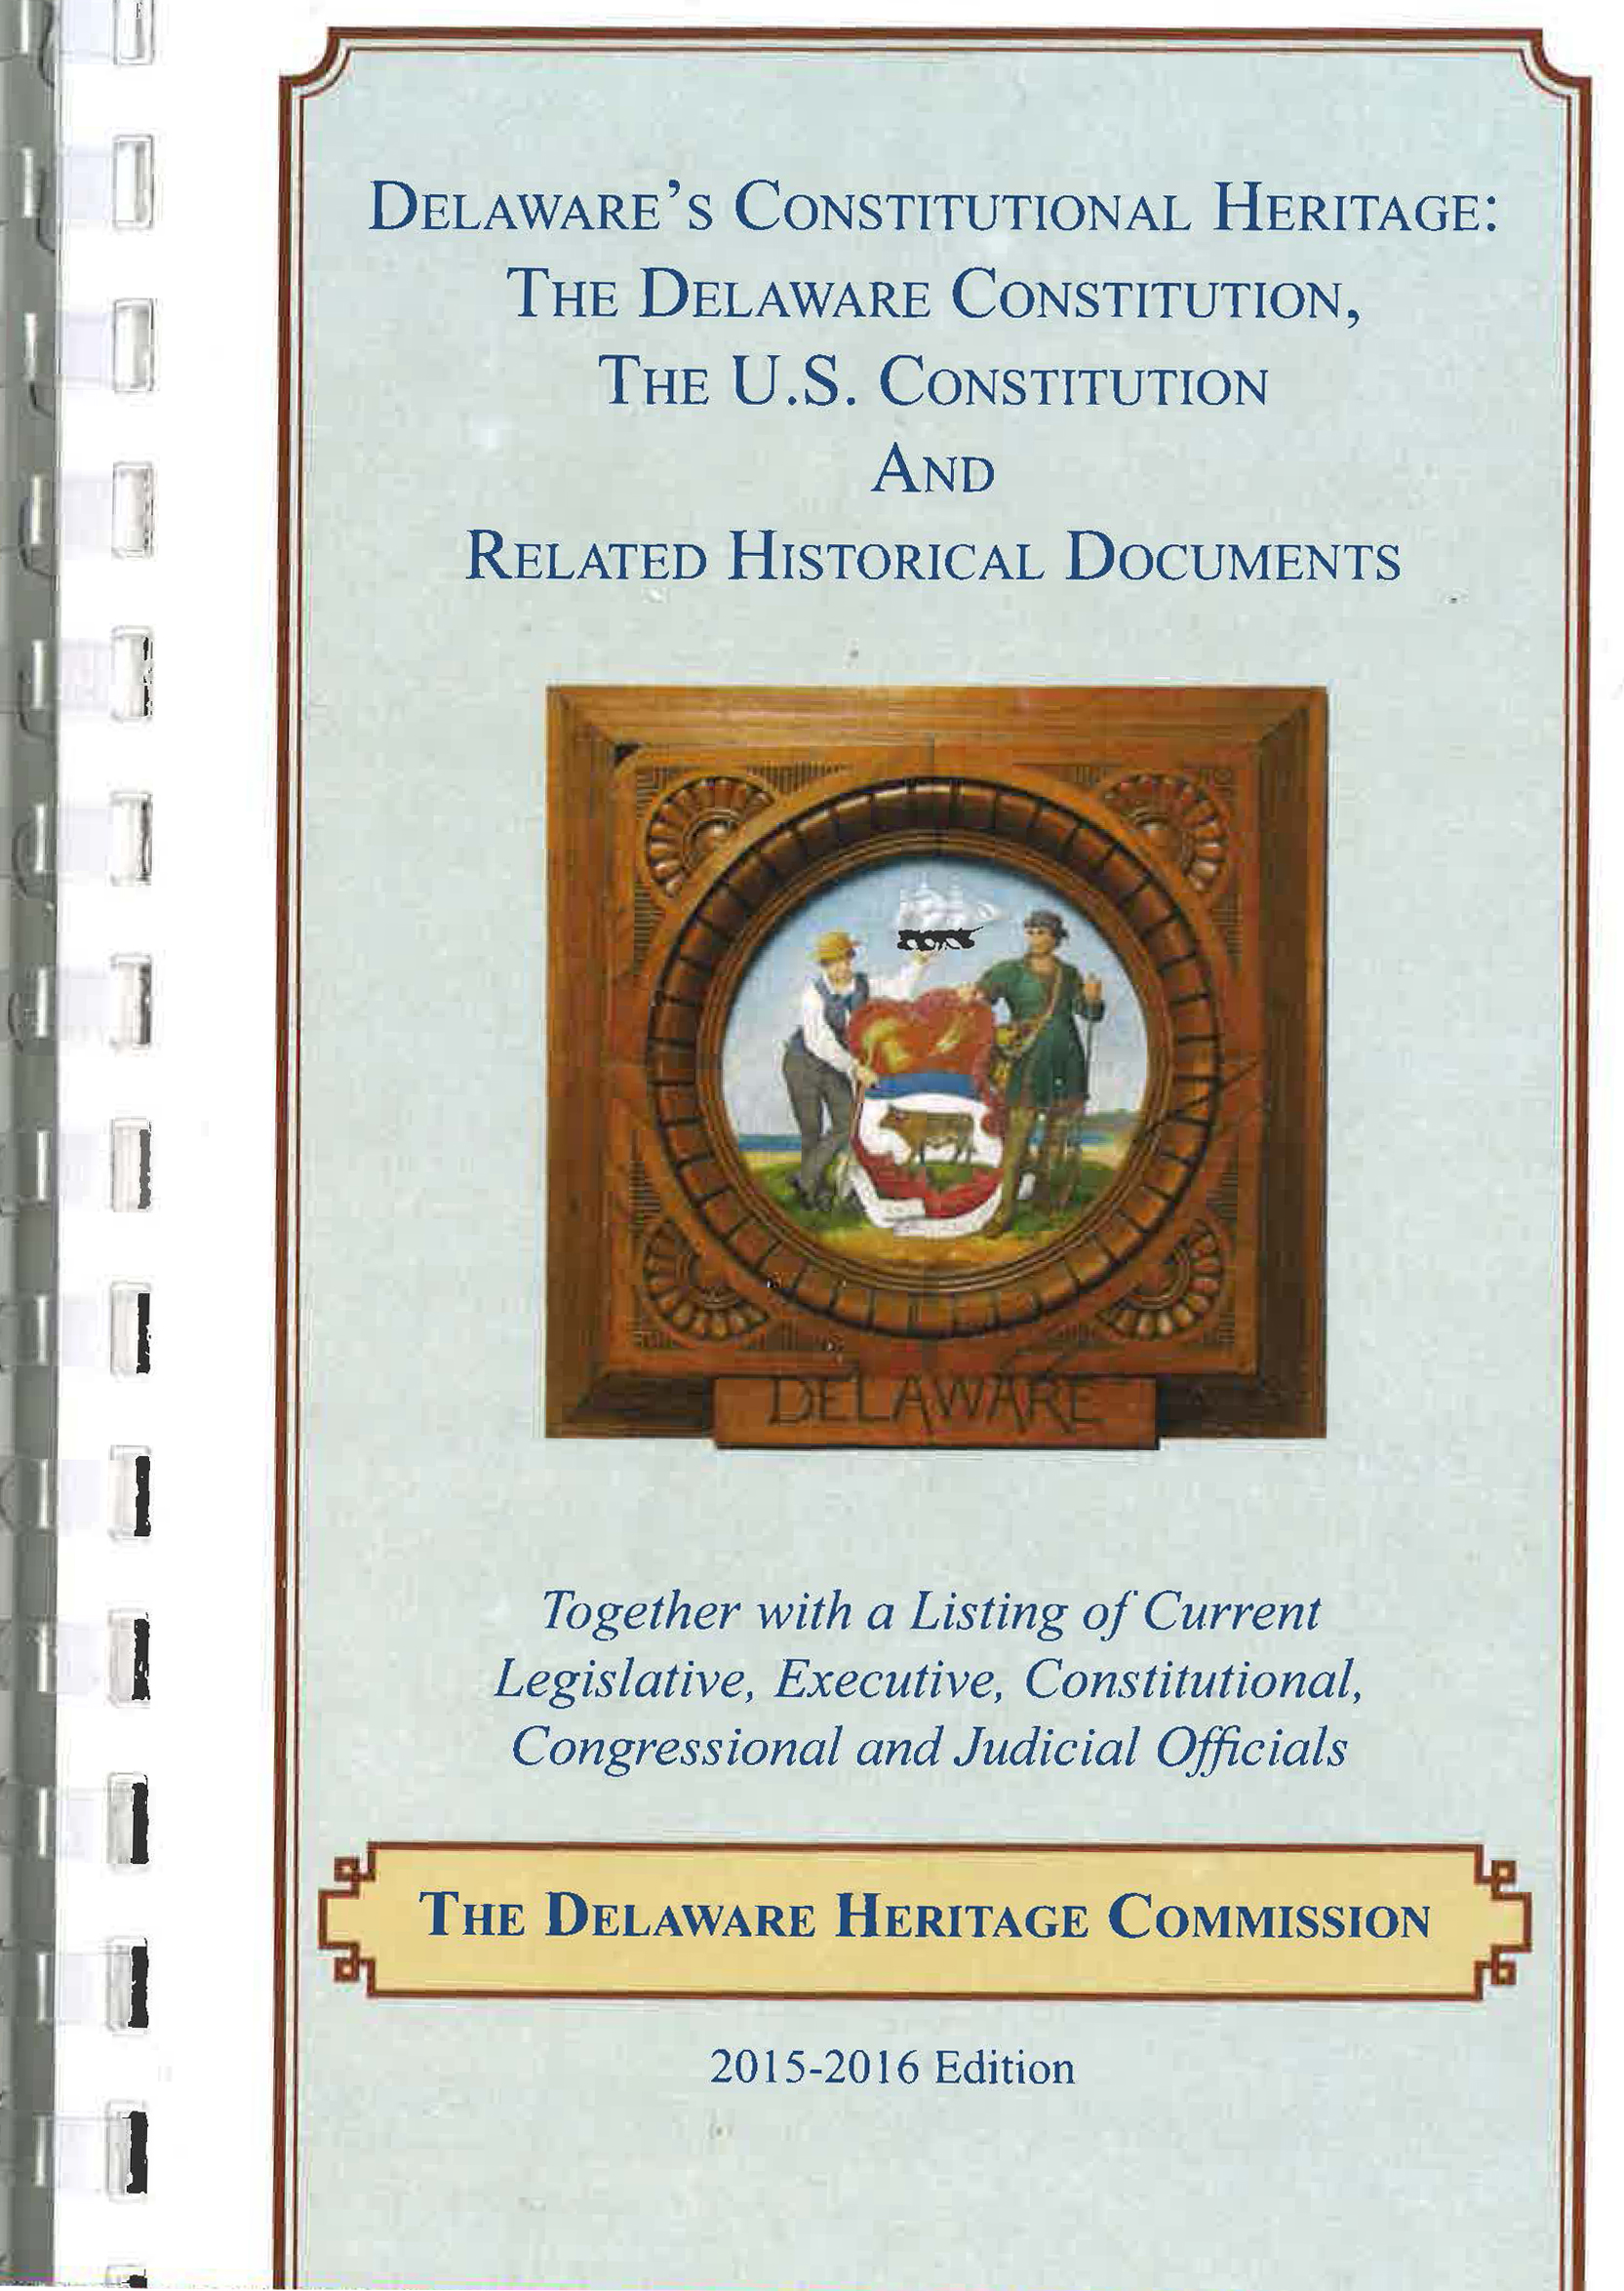 Delaware's Constitutional Heritage: The Delaware Constitution, The U.S. Constitution and Related Historical Documents, 2015-2016, COMB BINDED. Prices reflect the cost of the book PLUS S&H fee of $3.00